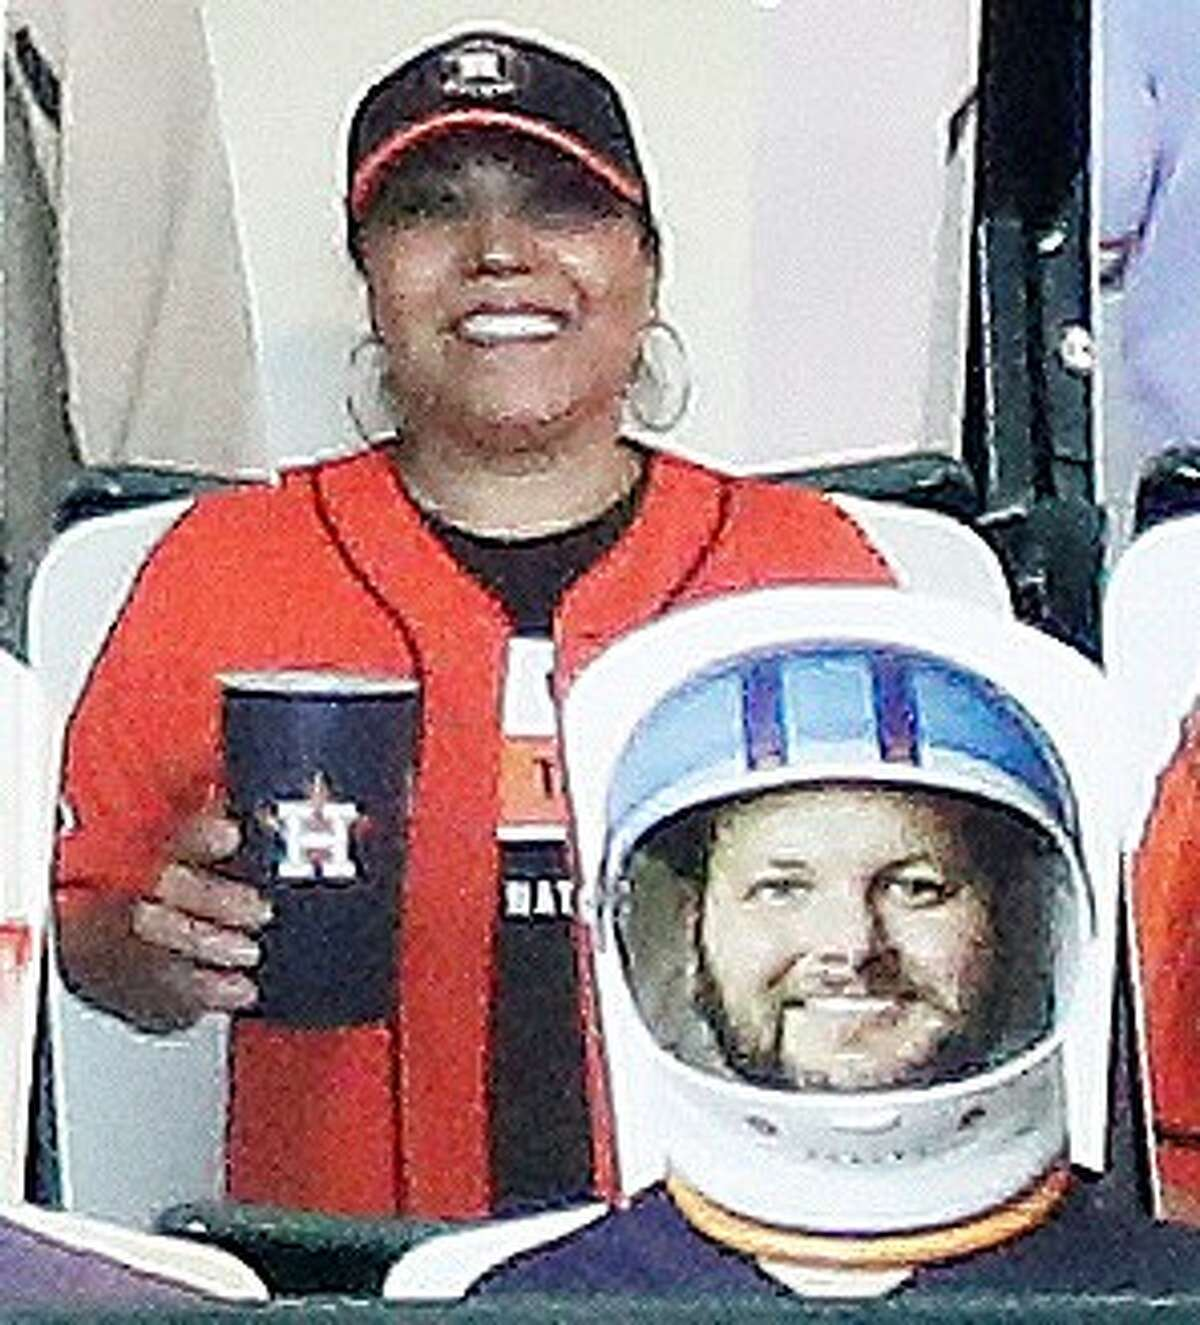 The Crawford Boxes aren't the Crawford Boxes without beers. So, salute to this woman for coming prepared. And, Ol' Astronaut Helmet there is ready if the beers lead to rowdiness at any point during the season.